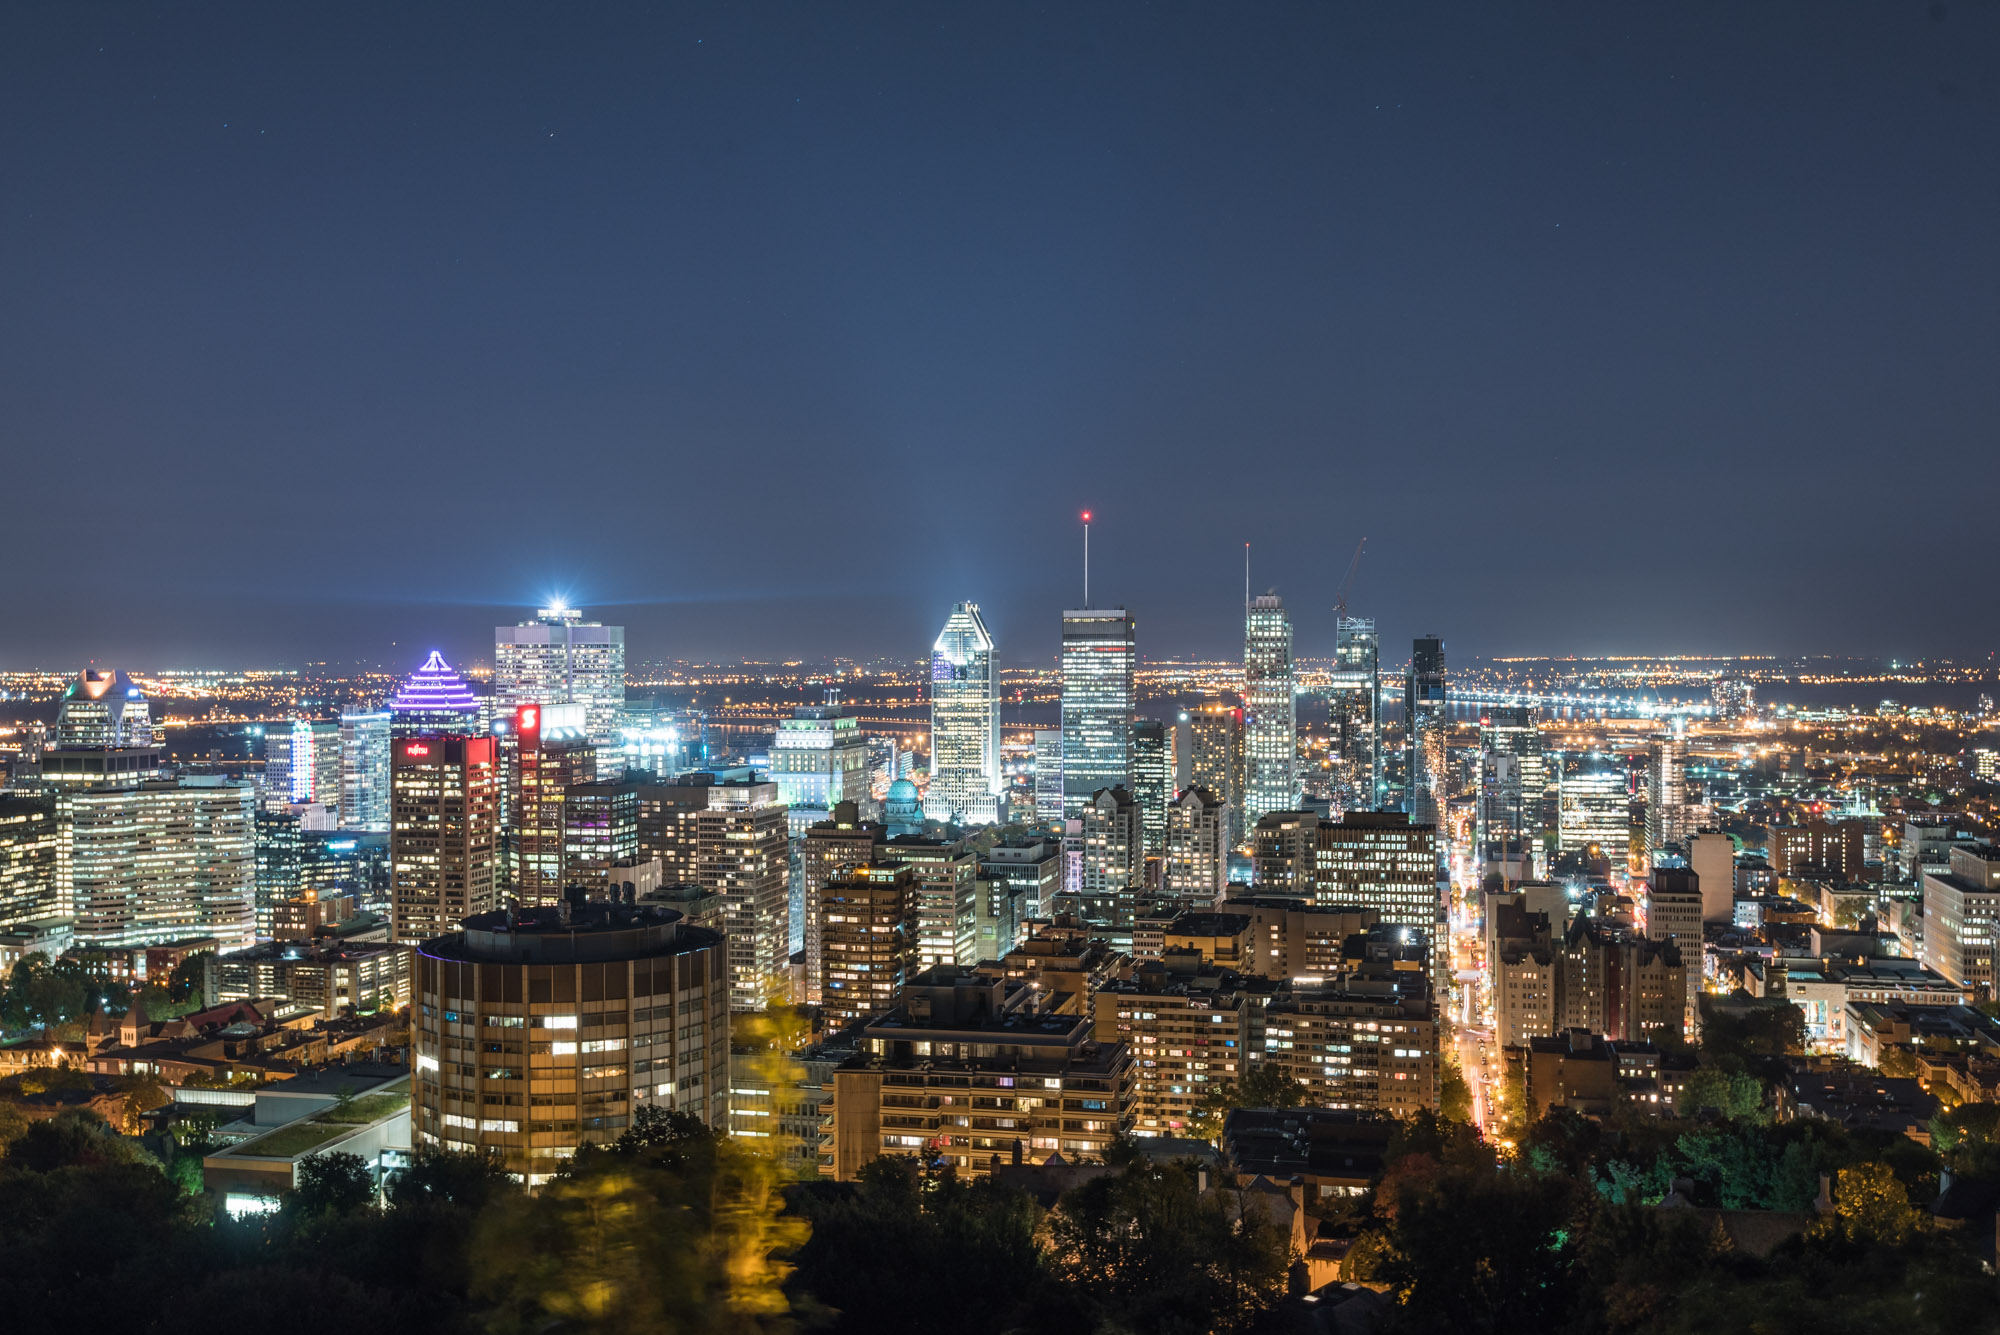 Jeff On The Road - How To Find An Apartment in Montreal - Mtl Skyline from Belvedere du Mont-Royal - All photos are under Copyright  © 2017 Jeff Frenette Photography / dezjeff. To use the photos, please contact me at dezjeff@me.com.